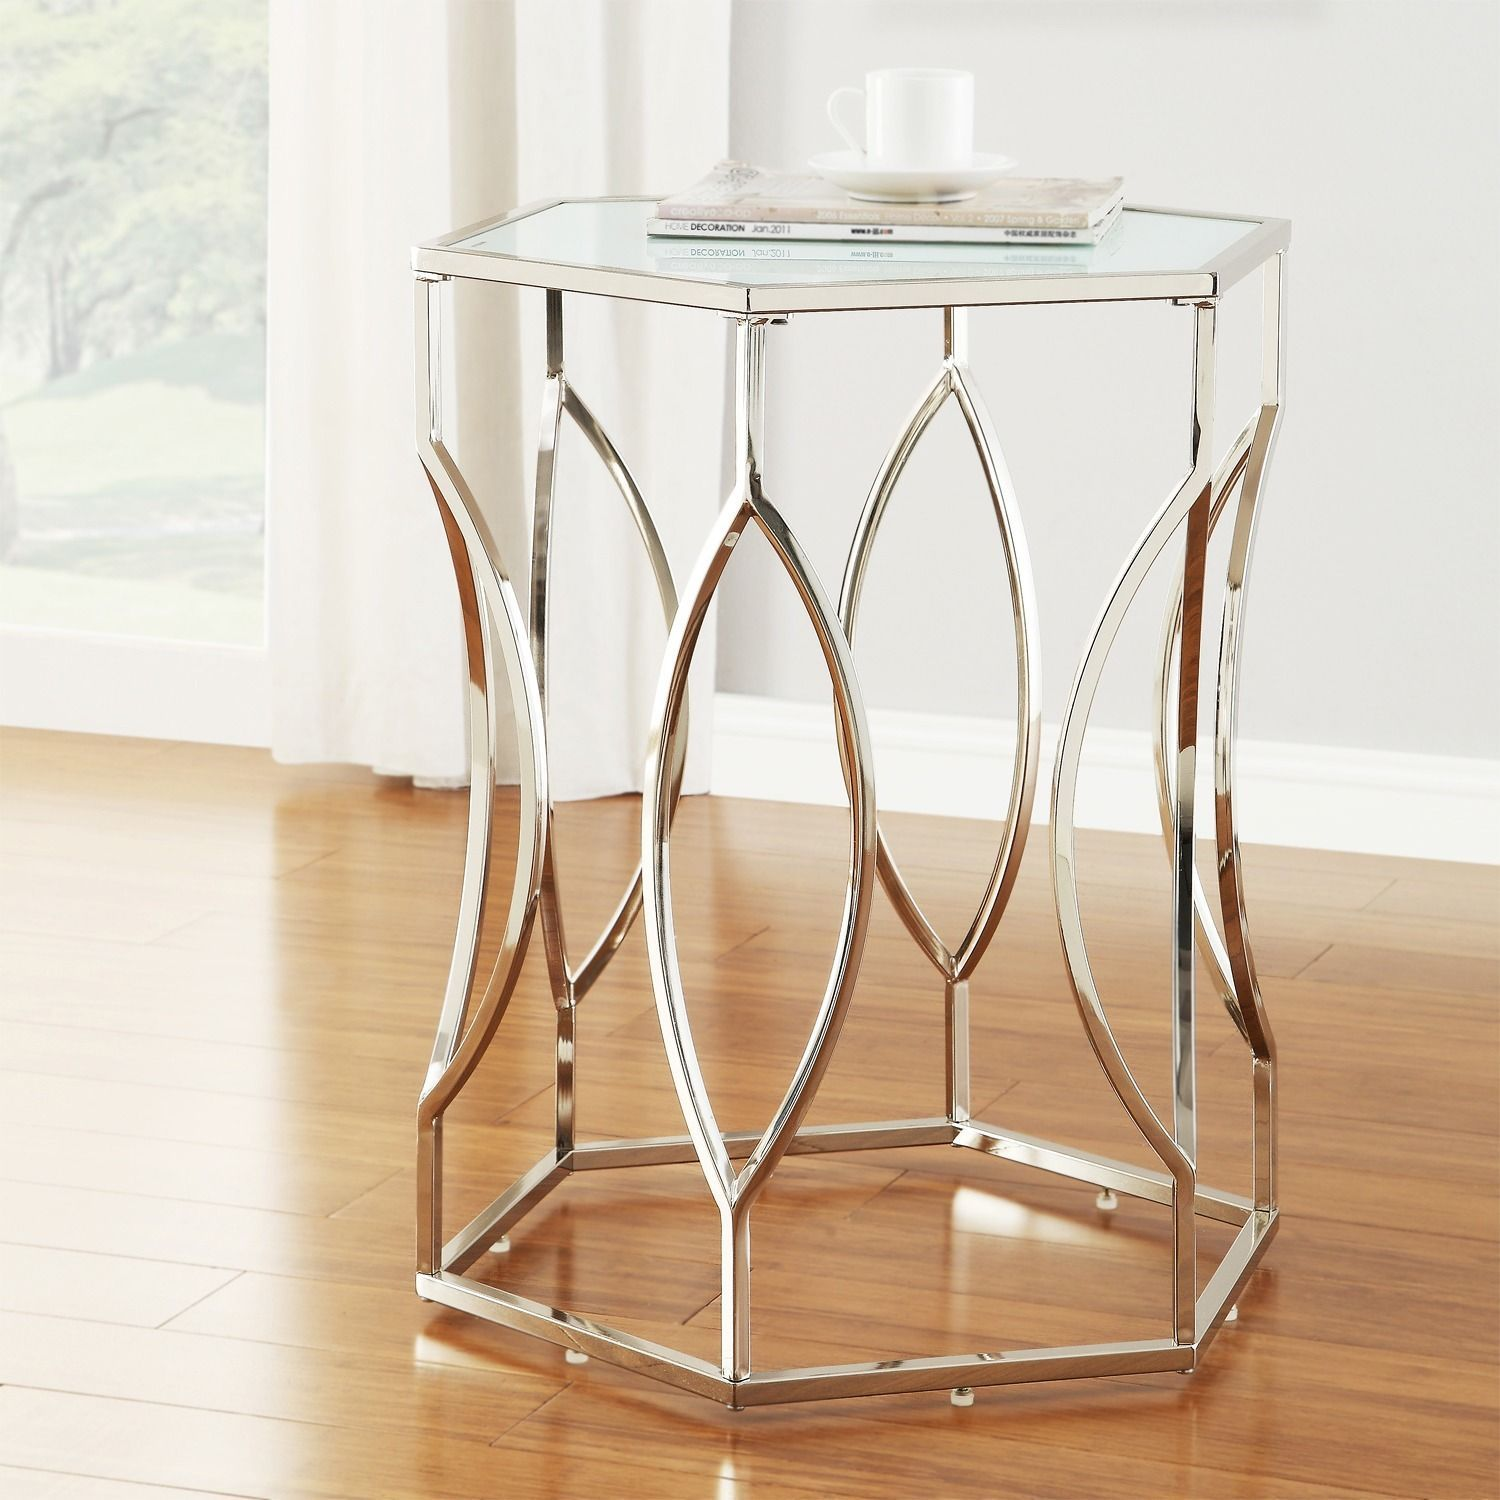 - Davlin Hexagonal Metal Frosted-glass Accent End Table By INSPIRE Q